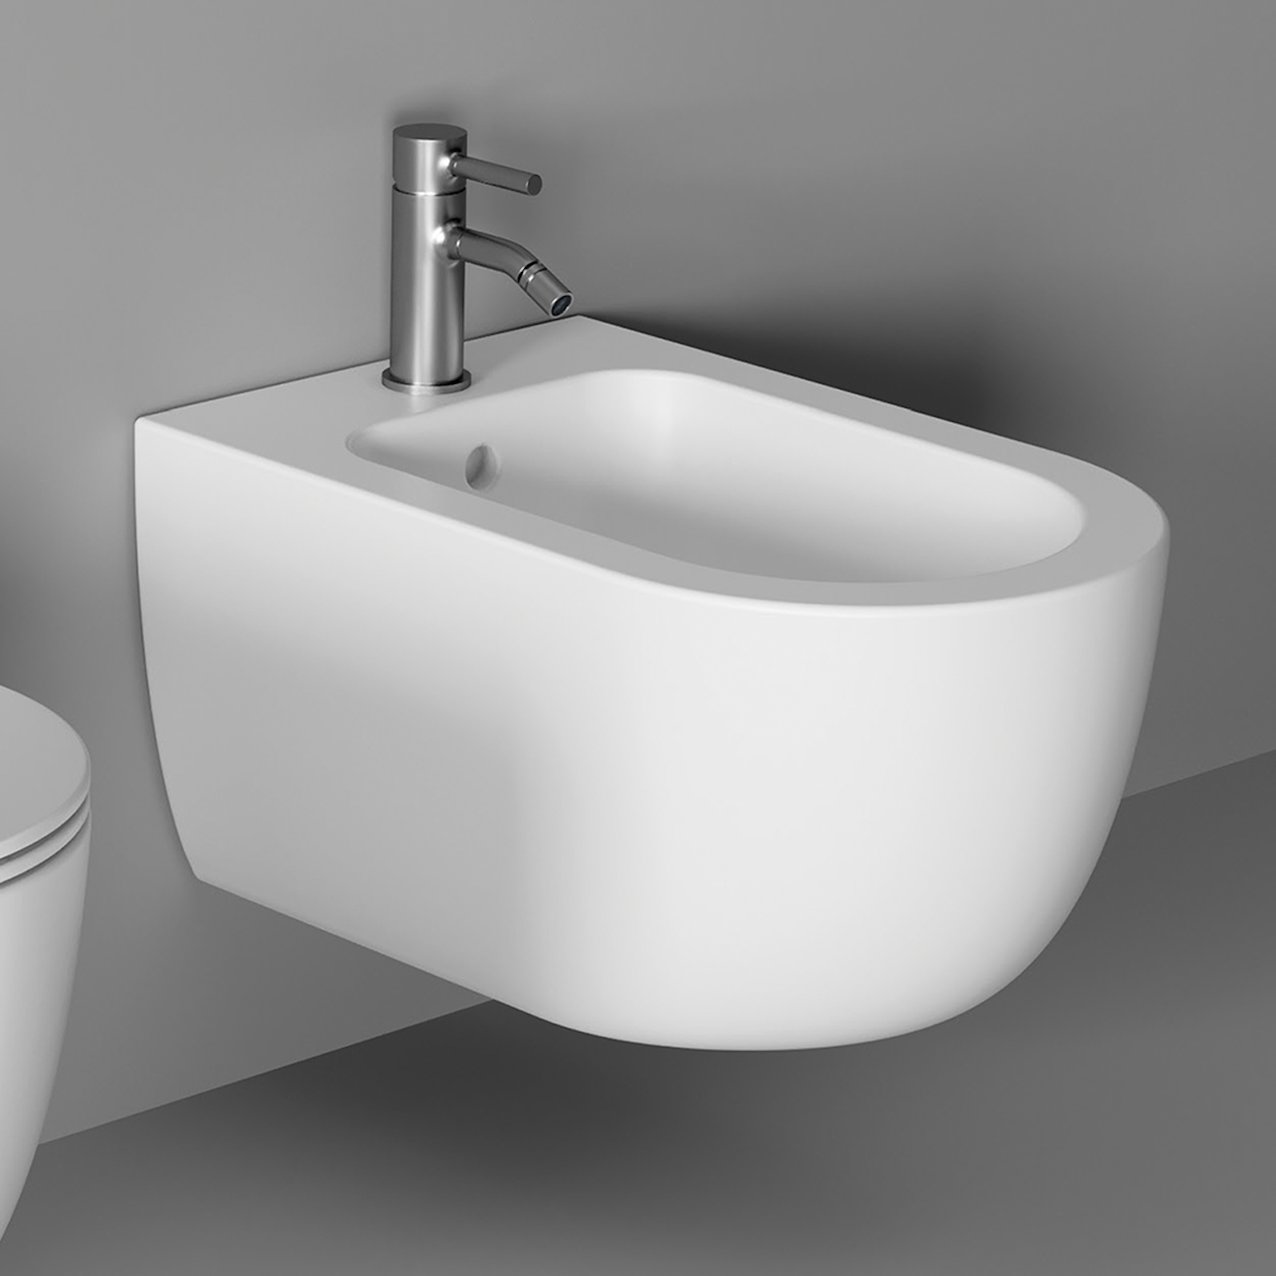 Bidet UNICA 55 wall hung